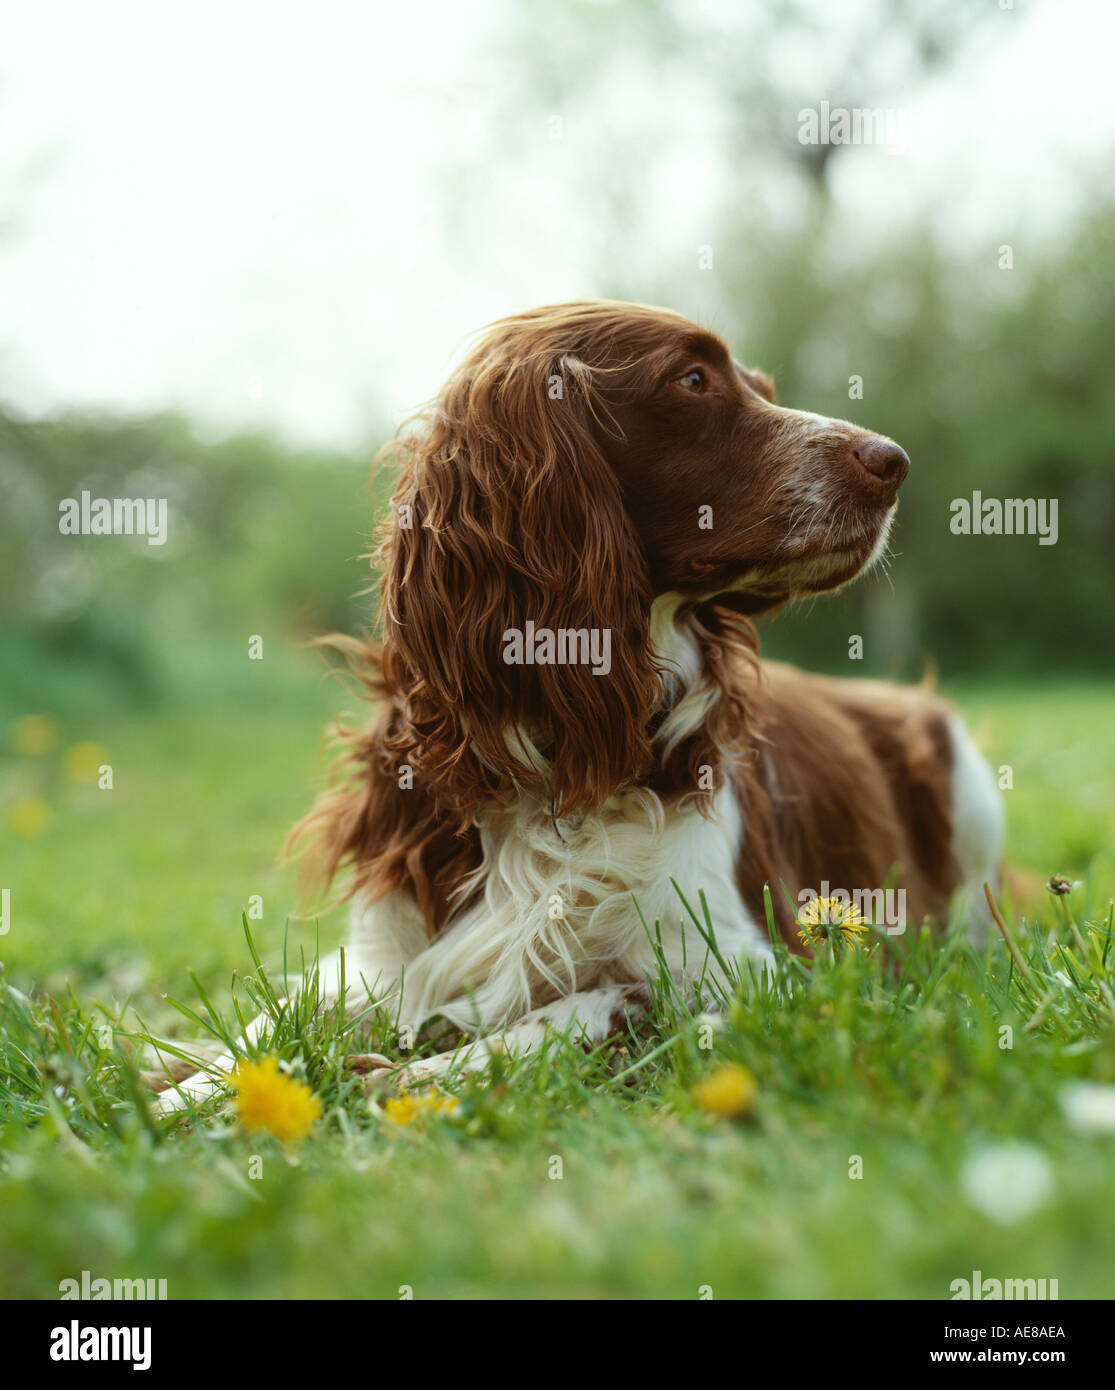 springer spaniel on grass - Stock Image